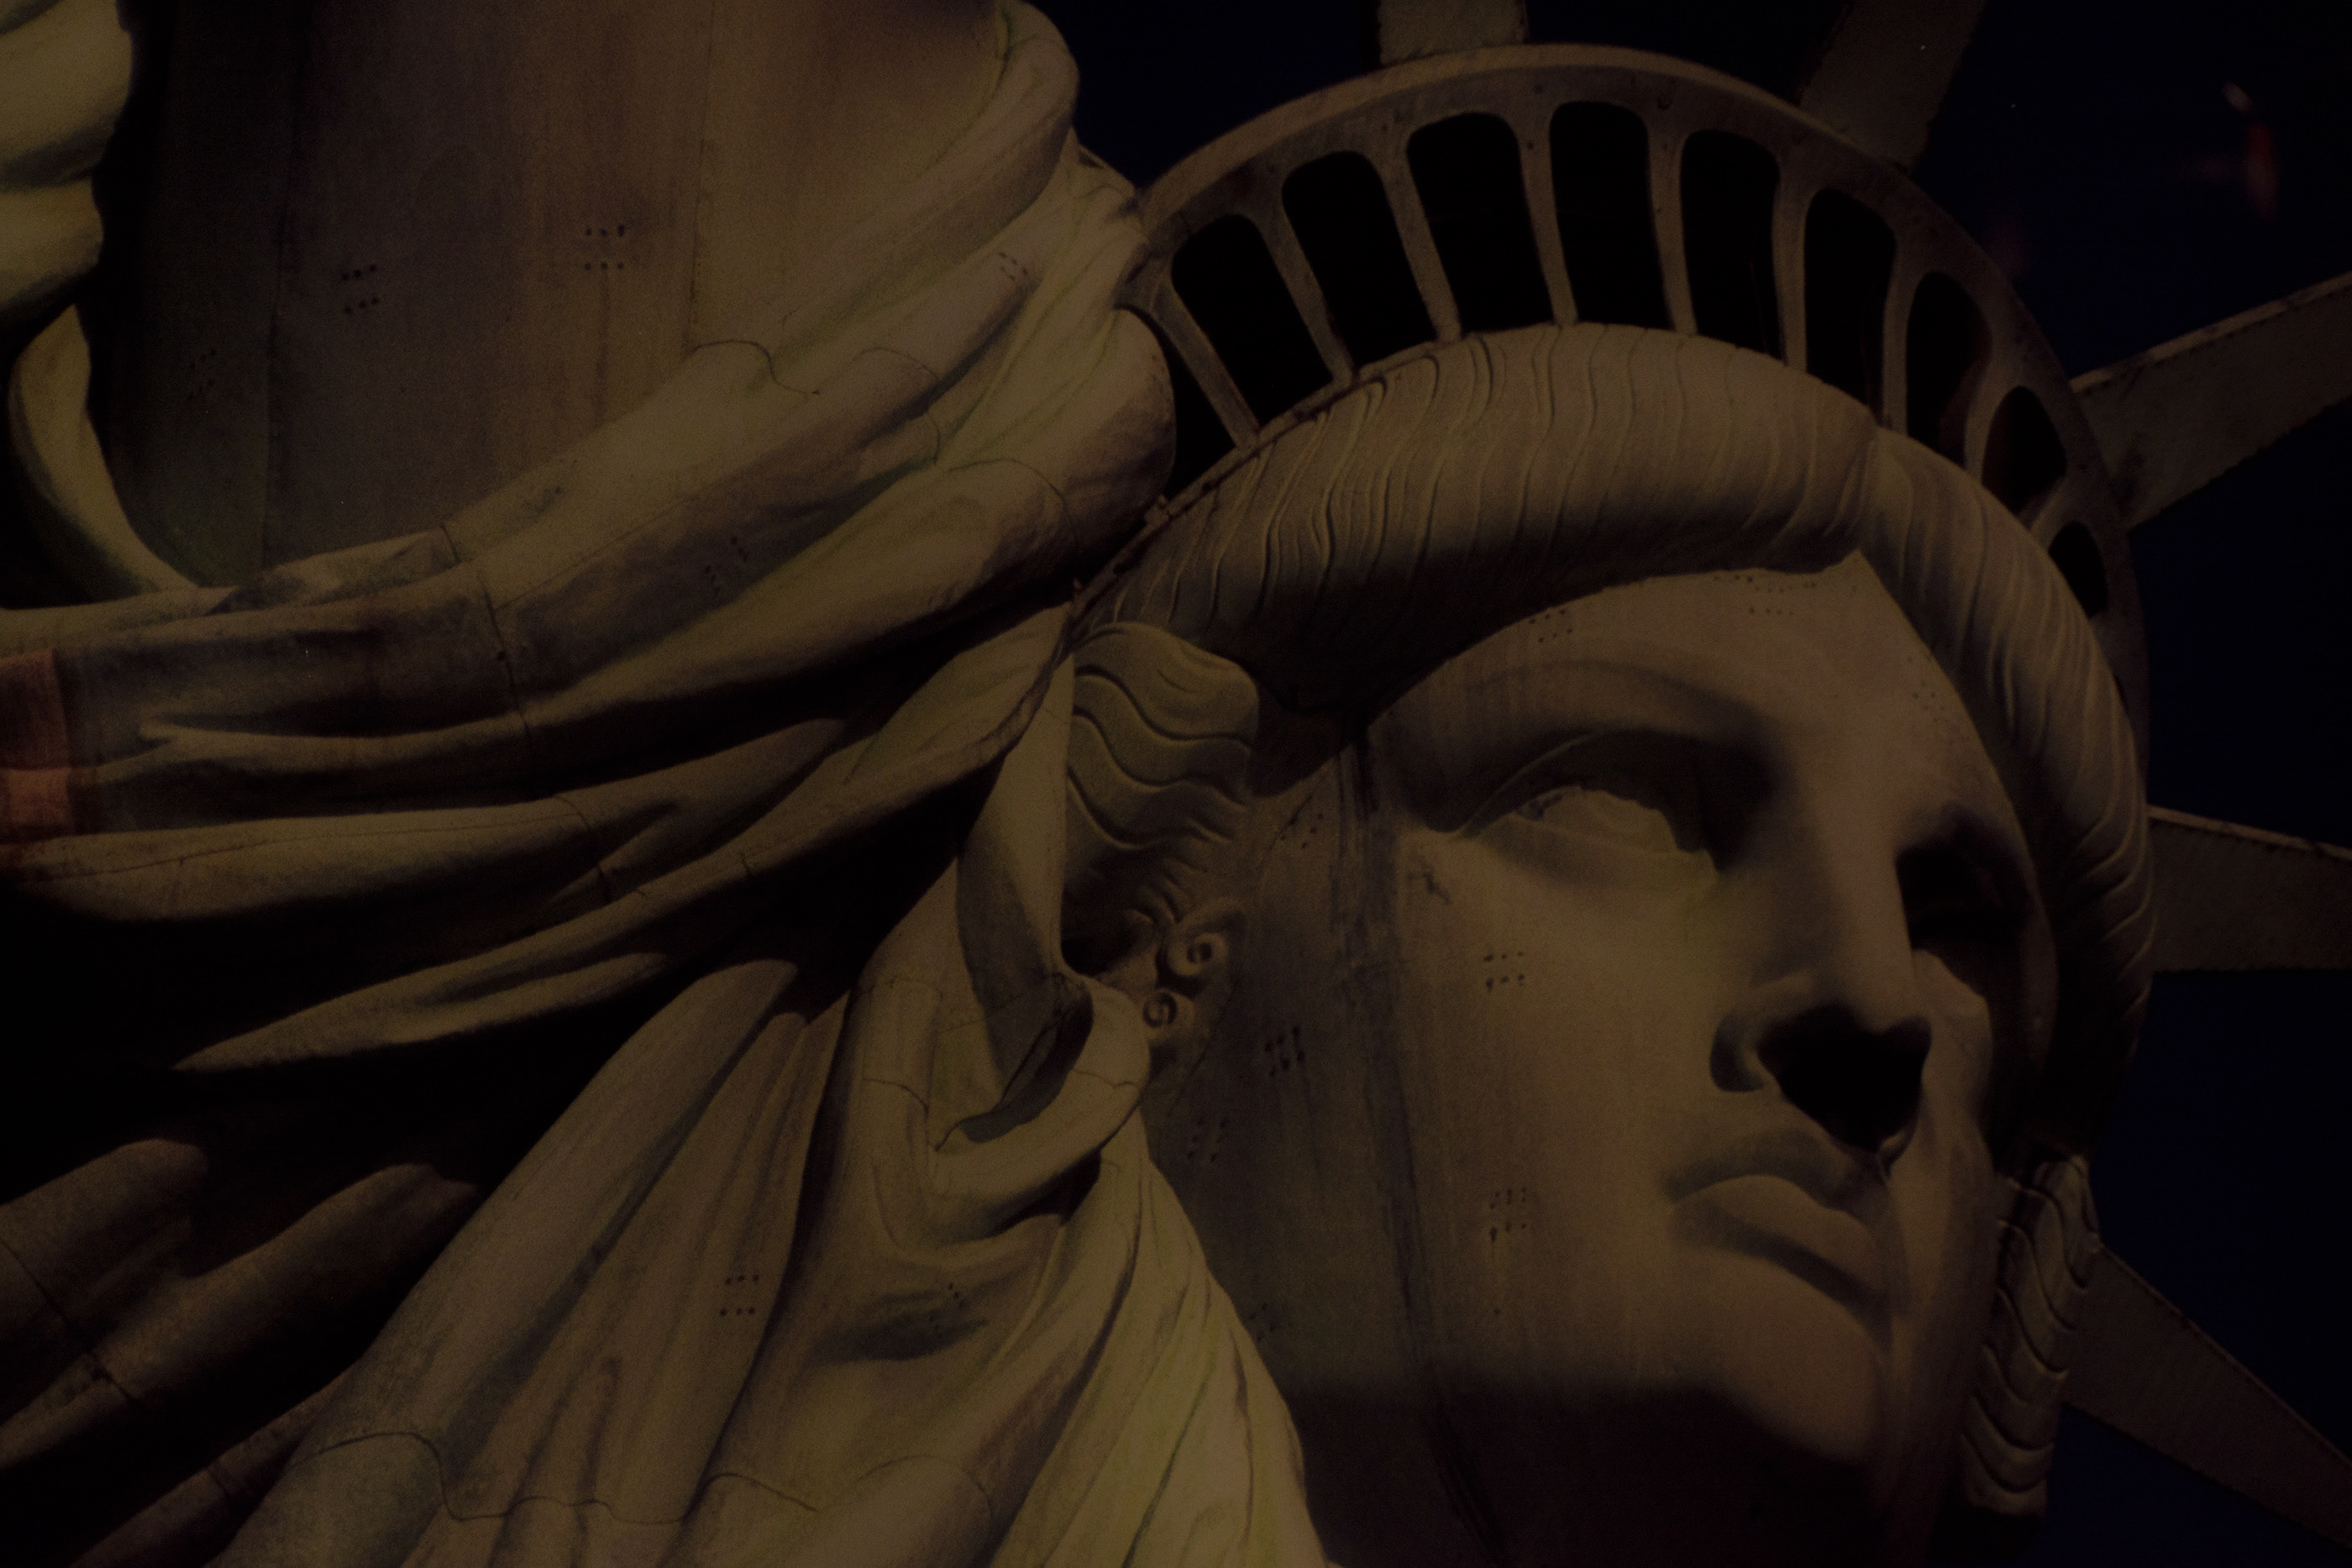 Statue Of Liberty On Behance